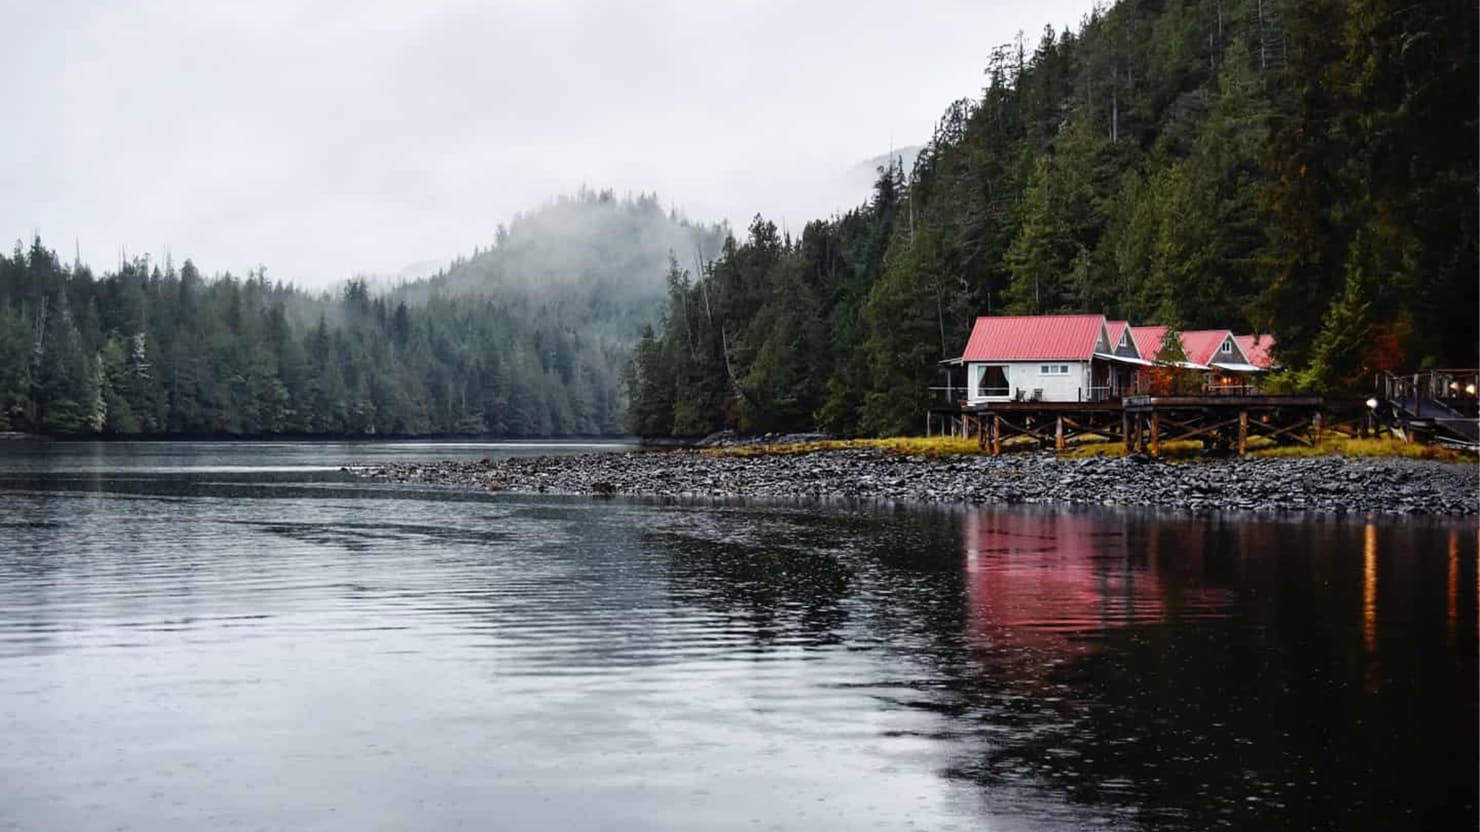 How I Got Lost in British Columbia